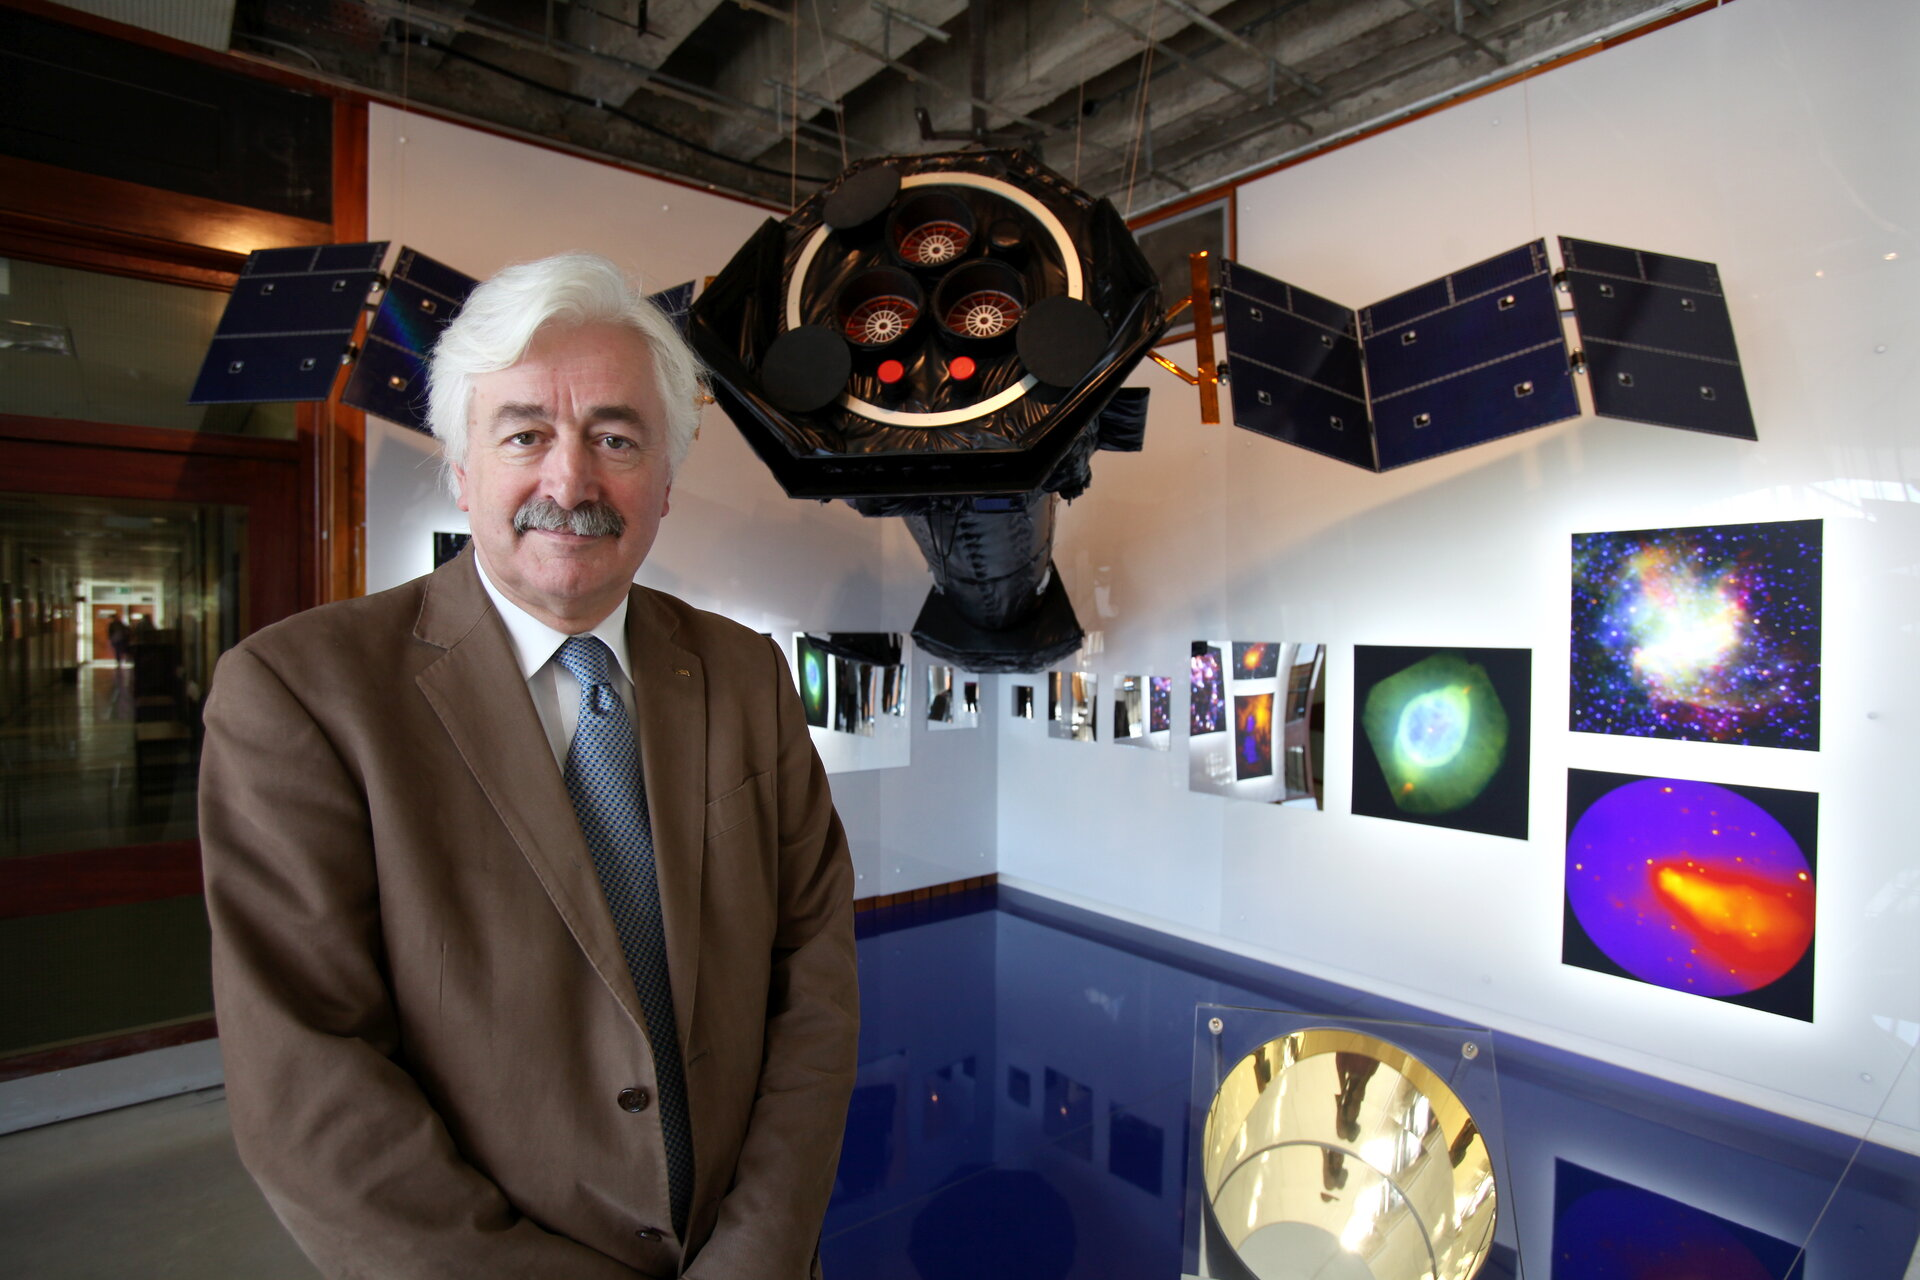 David Southwood, Director of ESA's Science and Robotic Exploration Programme